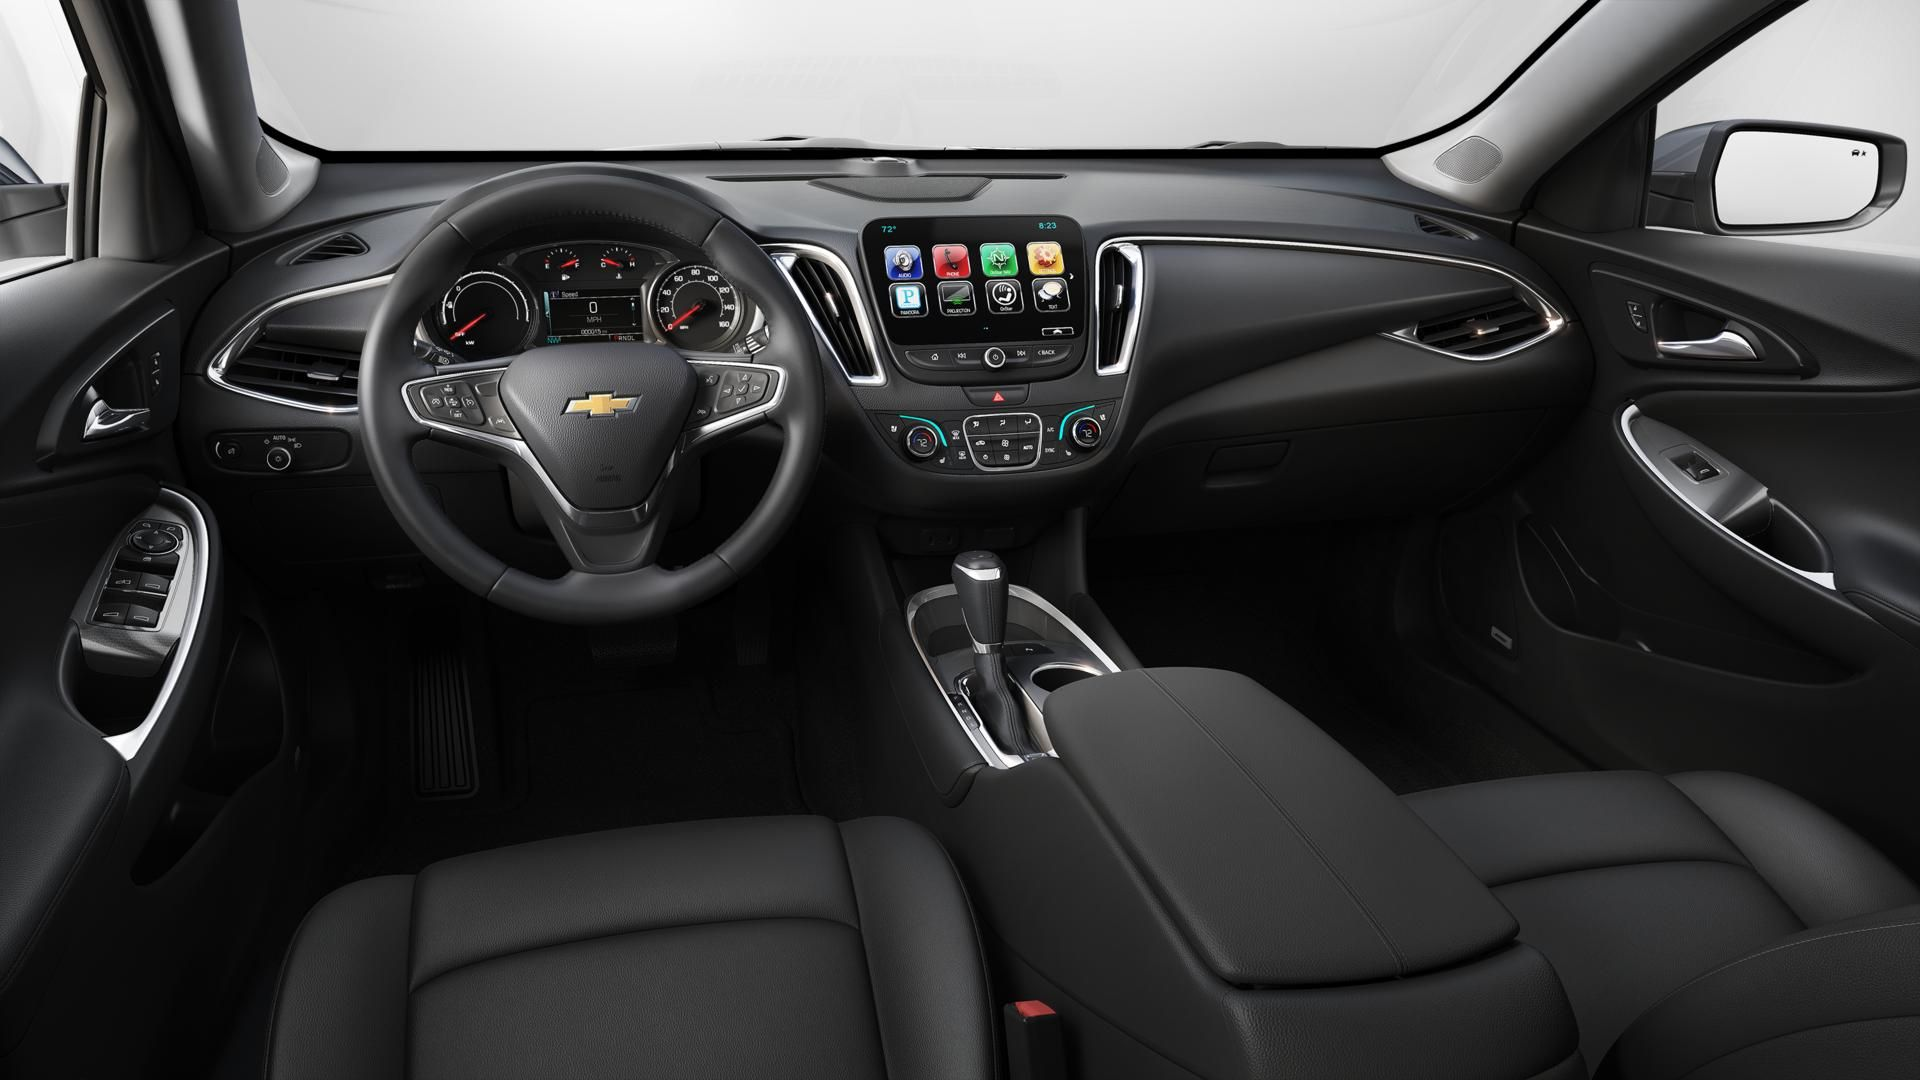 Malibu 2018 Chevy Malibu Malibu For Sale Malibu